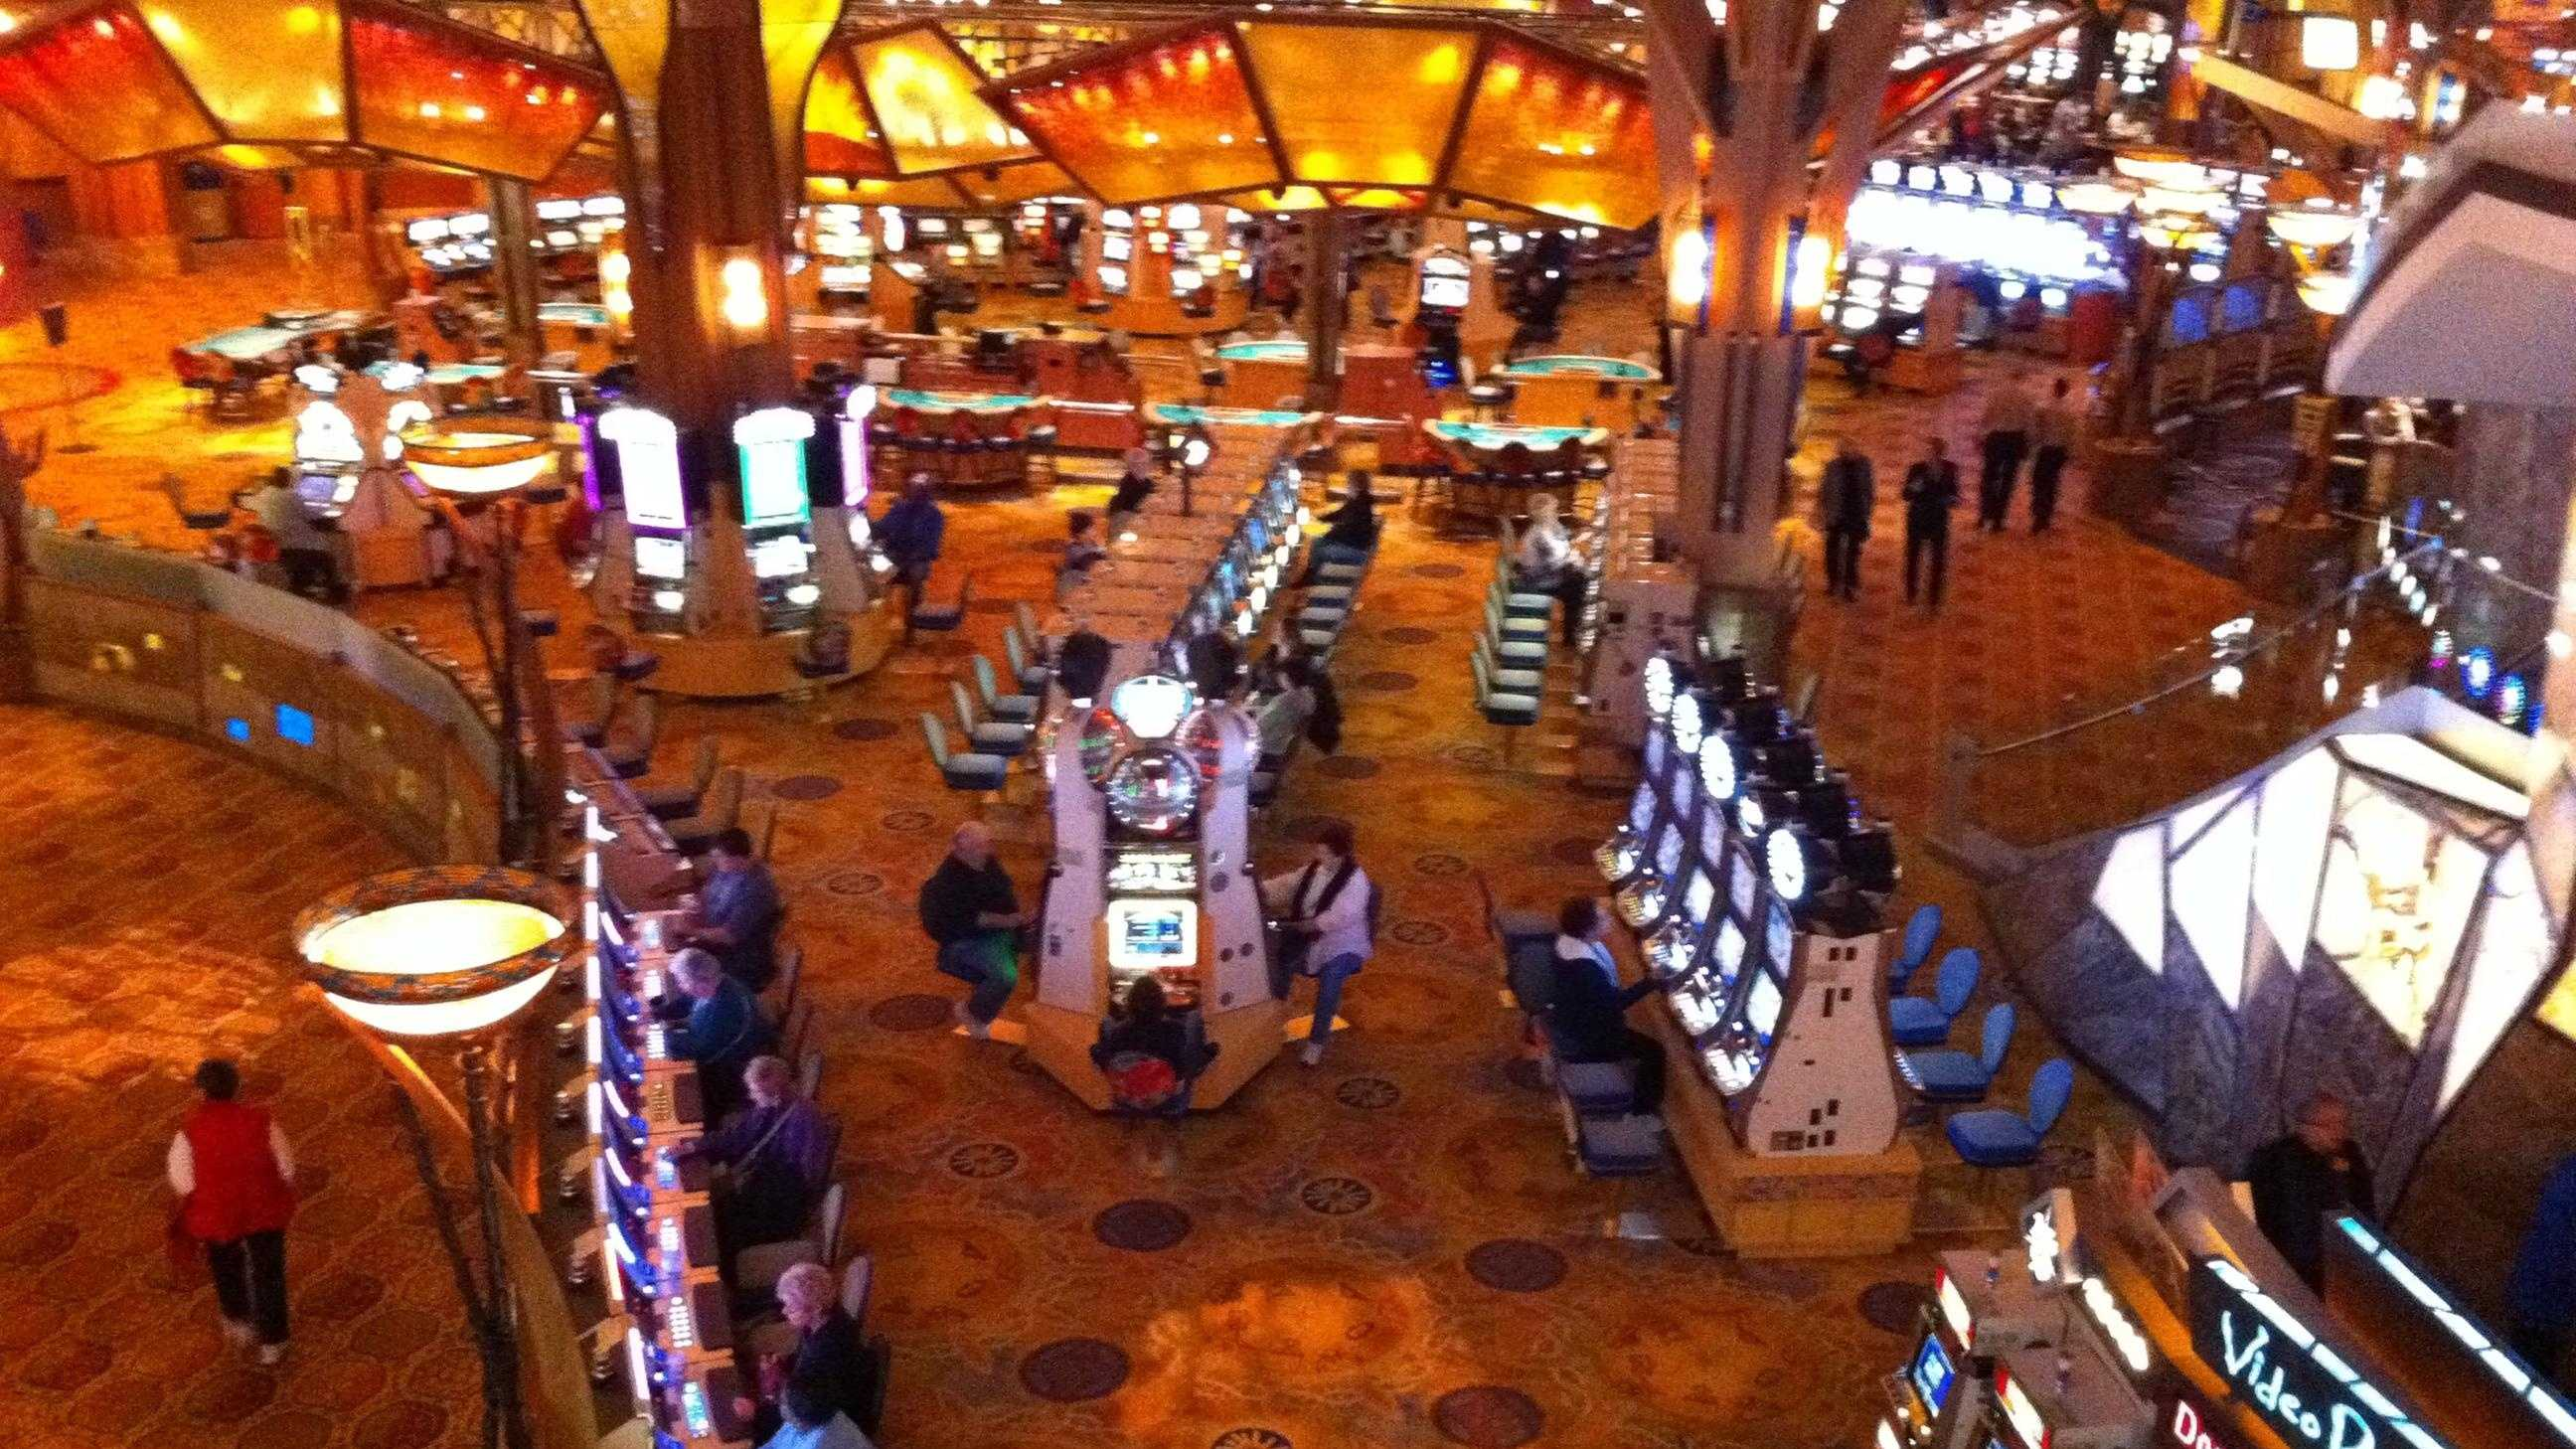 FW: Mohegan Sun Casino (photo.JPG) - 29785917